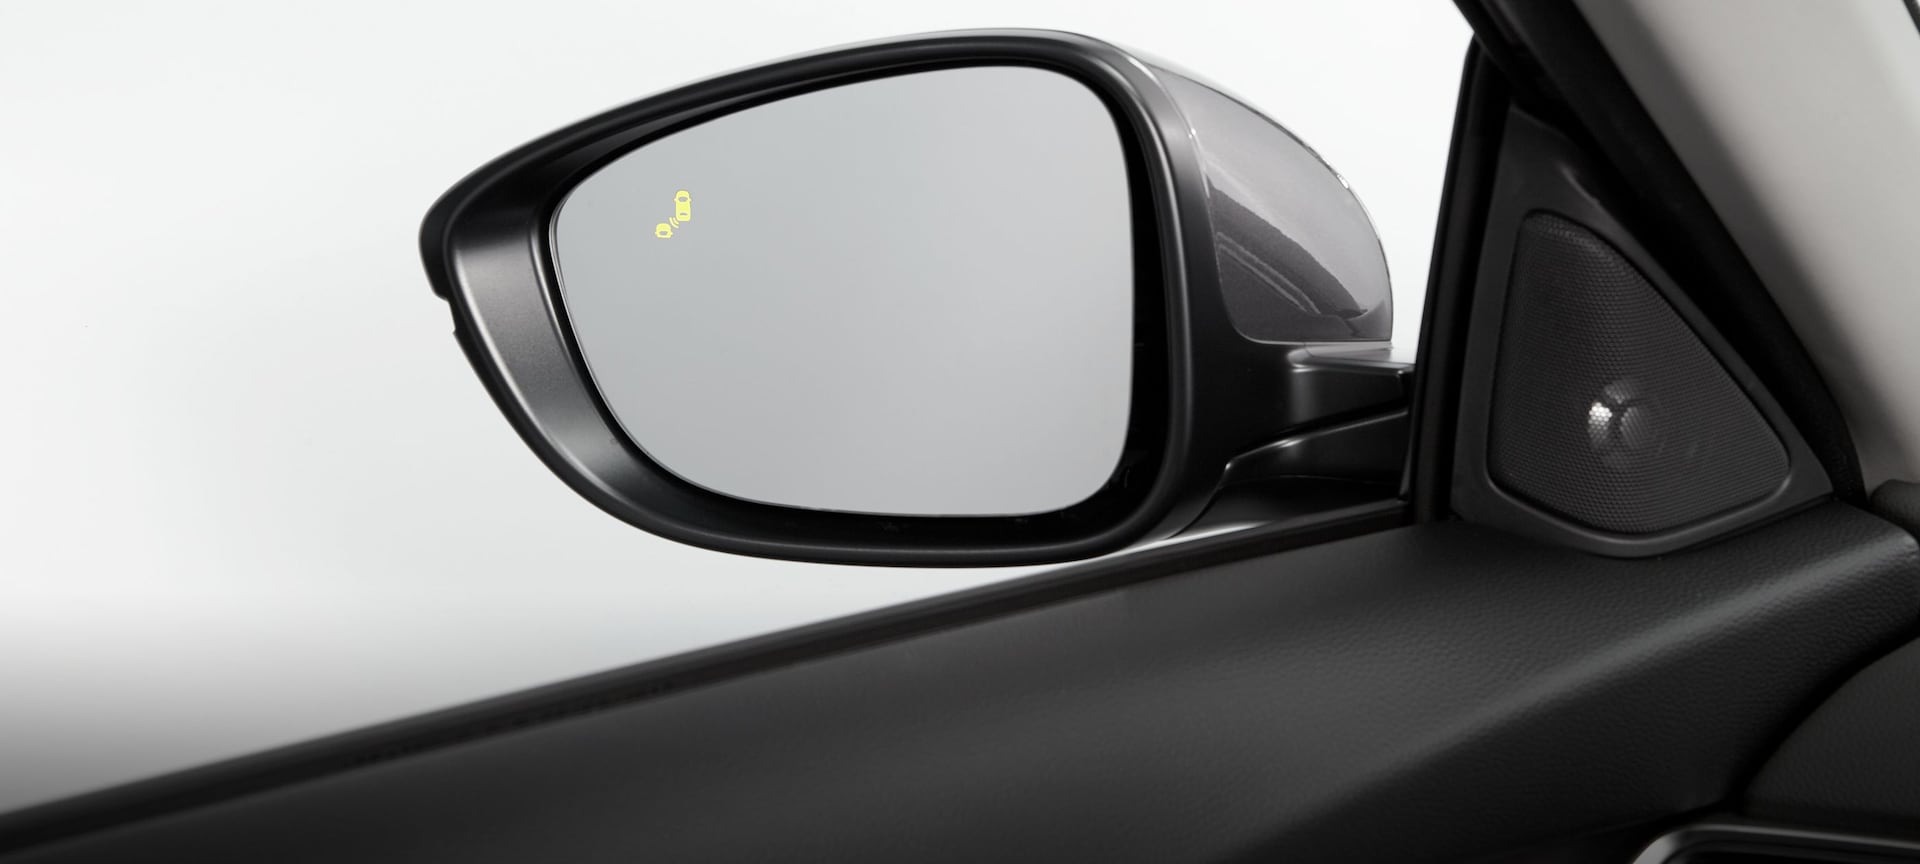 Detail of Blind Spot Information system warning icon on side mirror in the 2019 Honda Accord.